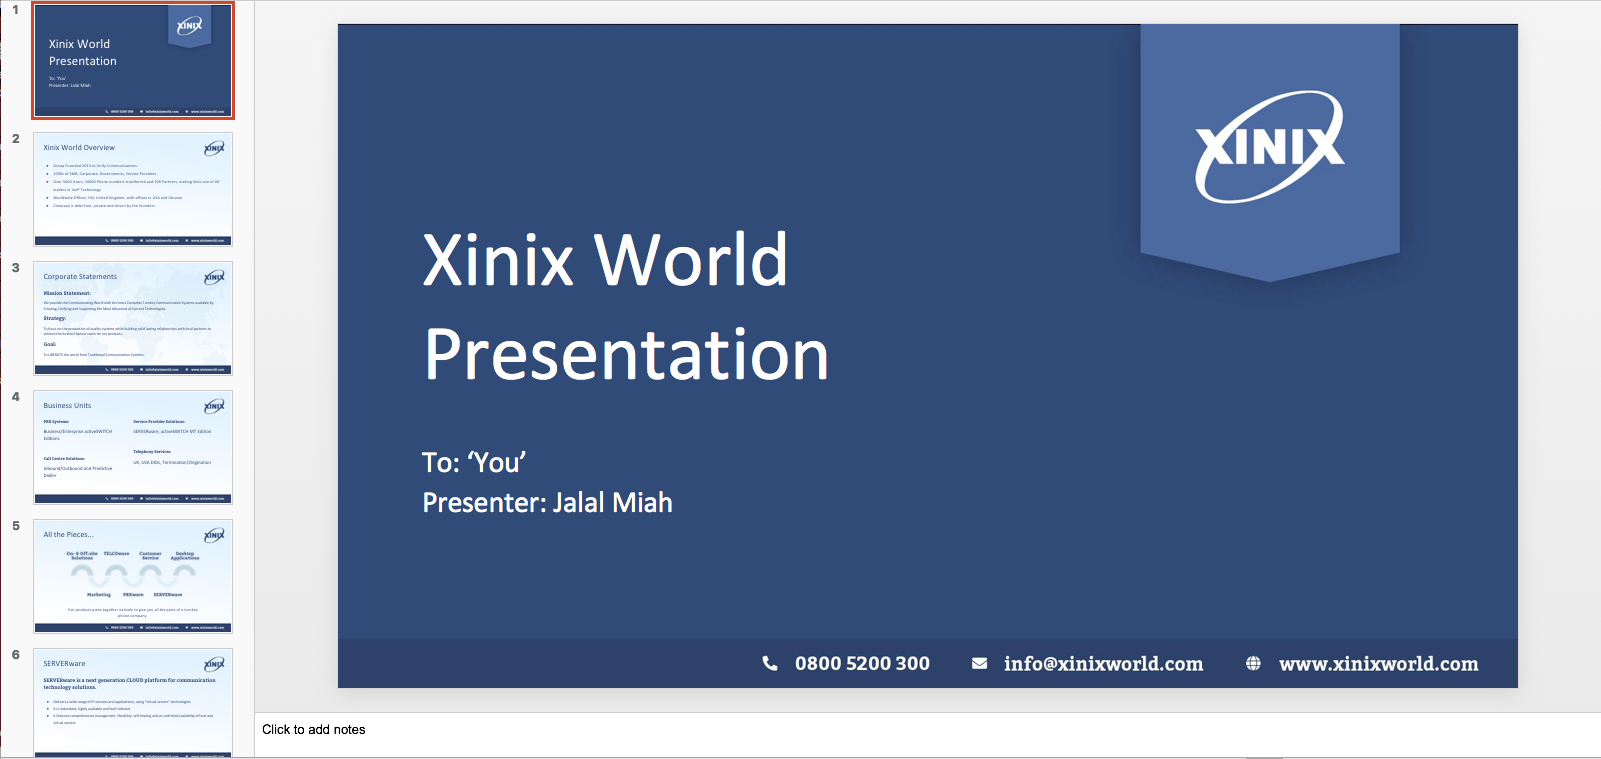 Xinix World Service Presentation